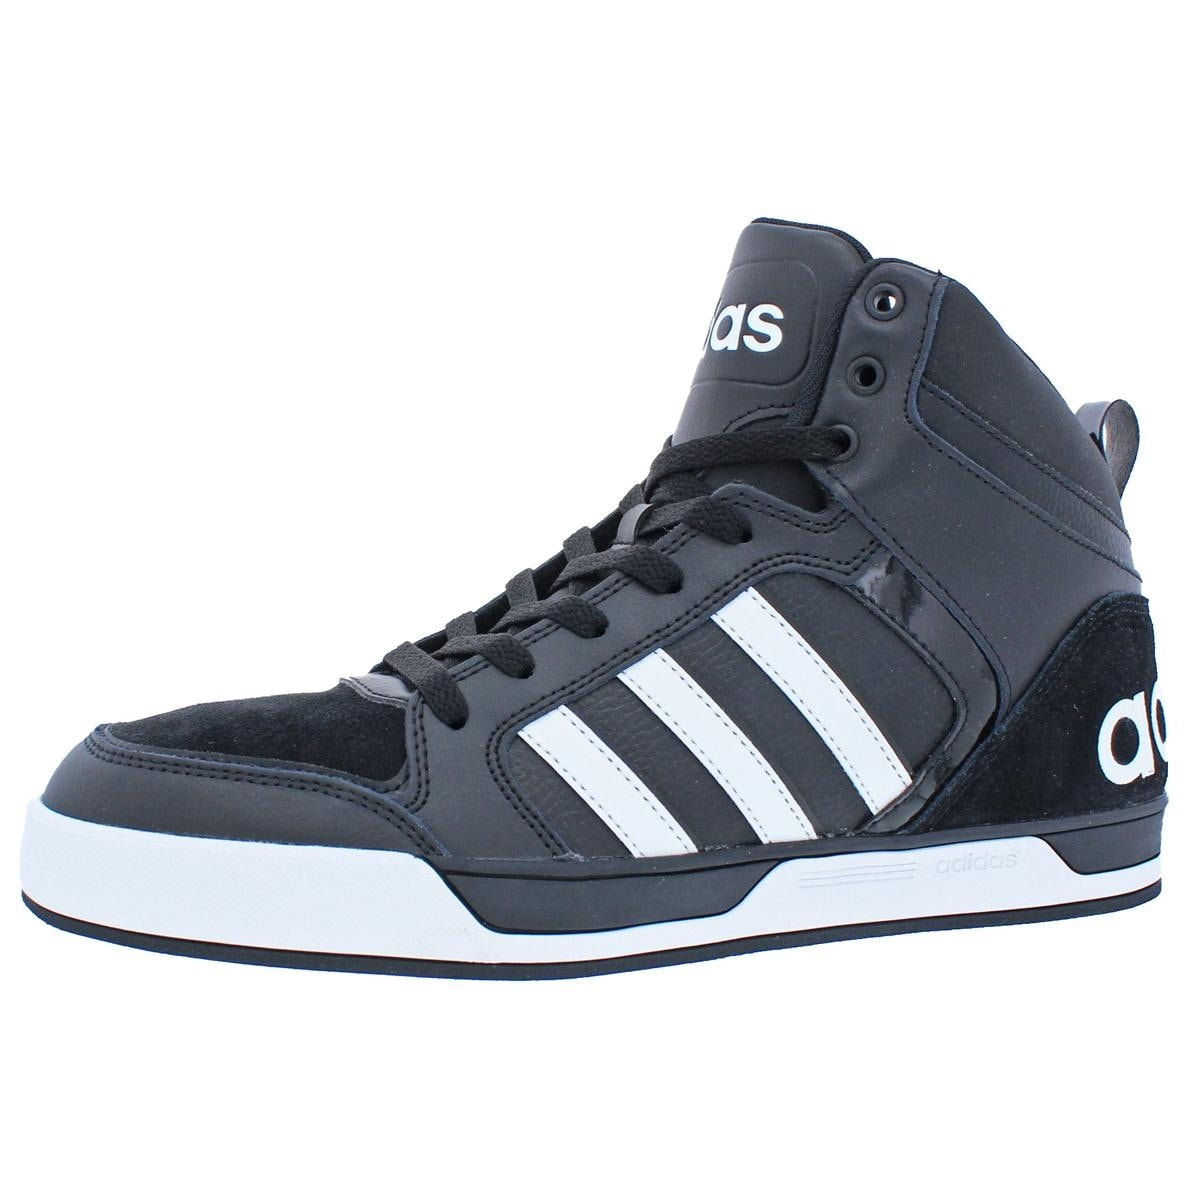 4575c9d3a01e Shop Adidas Mens Raleigh 9TIS Mid Basketball Shoes Performance Cloud ...